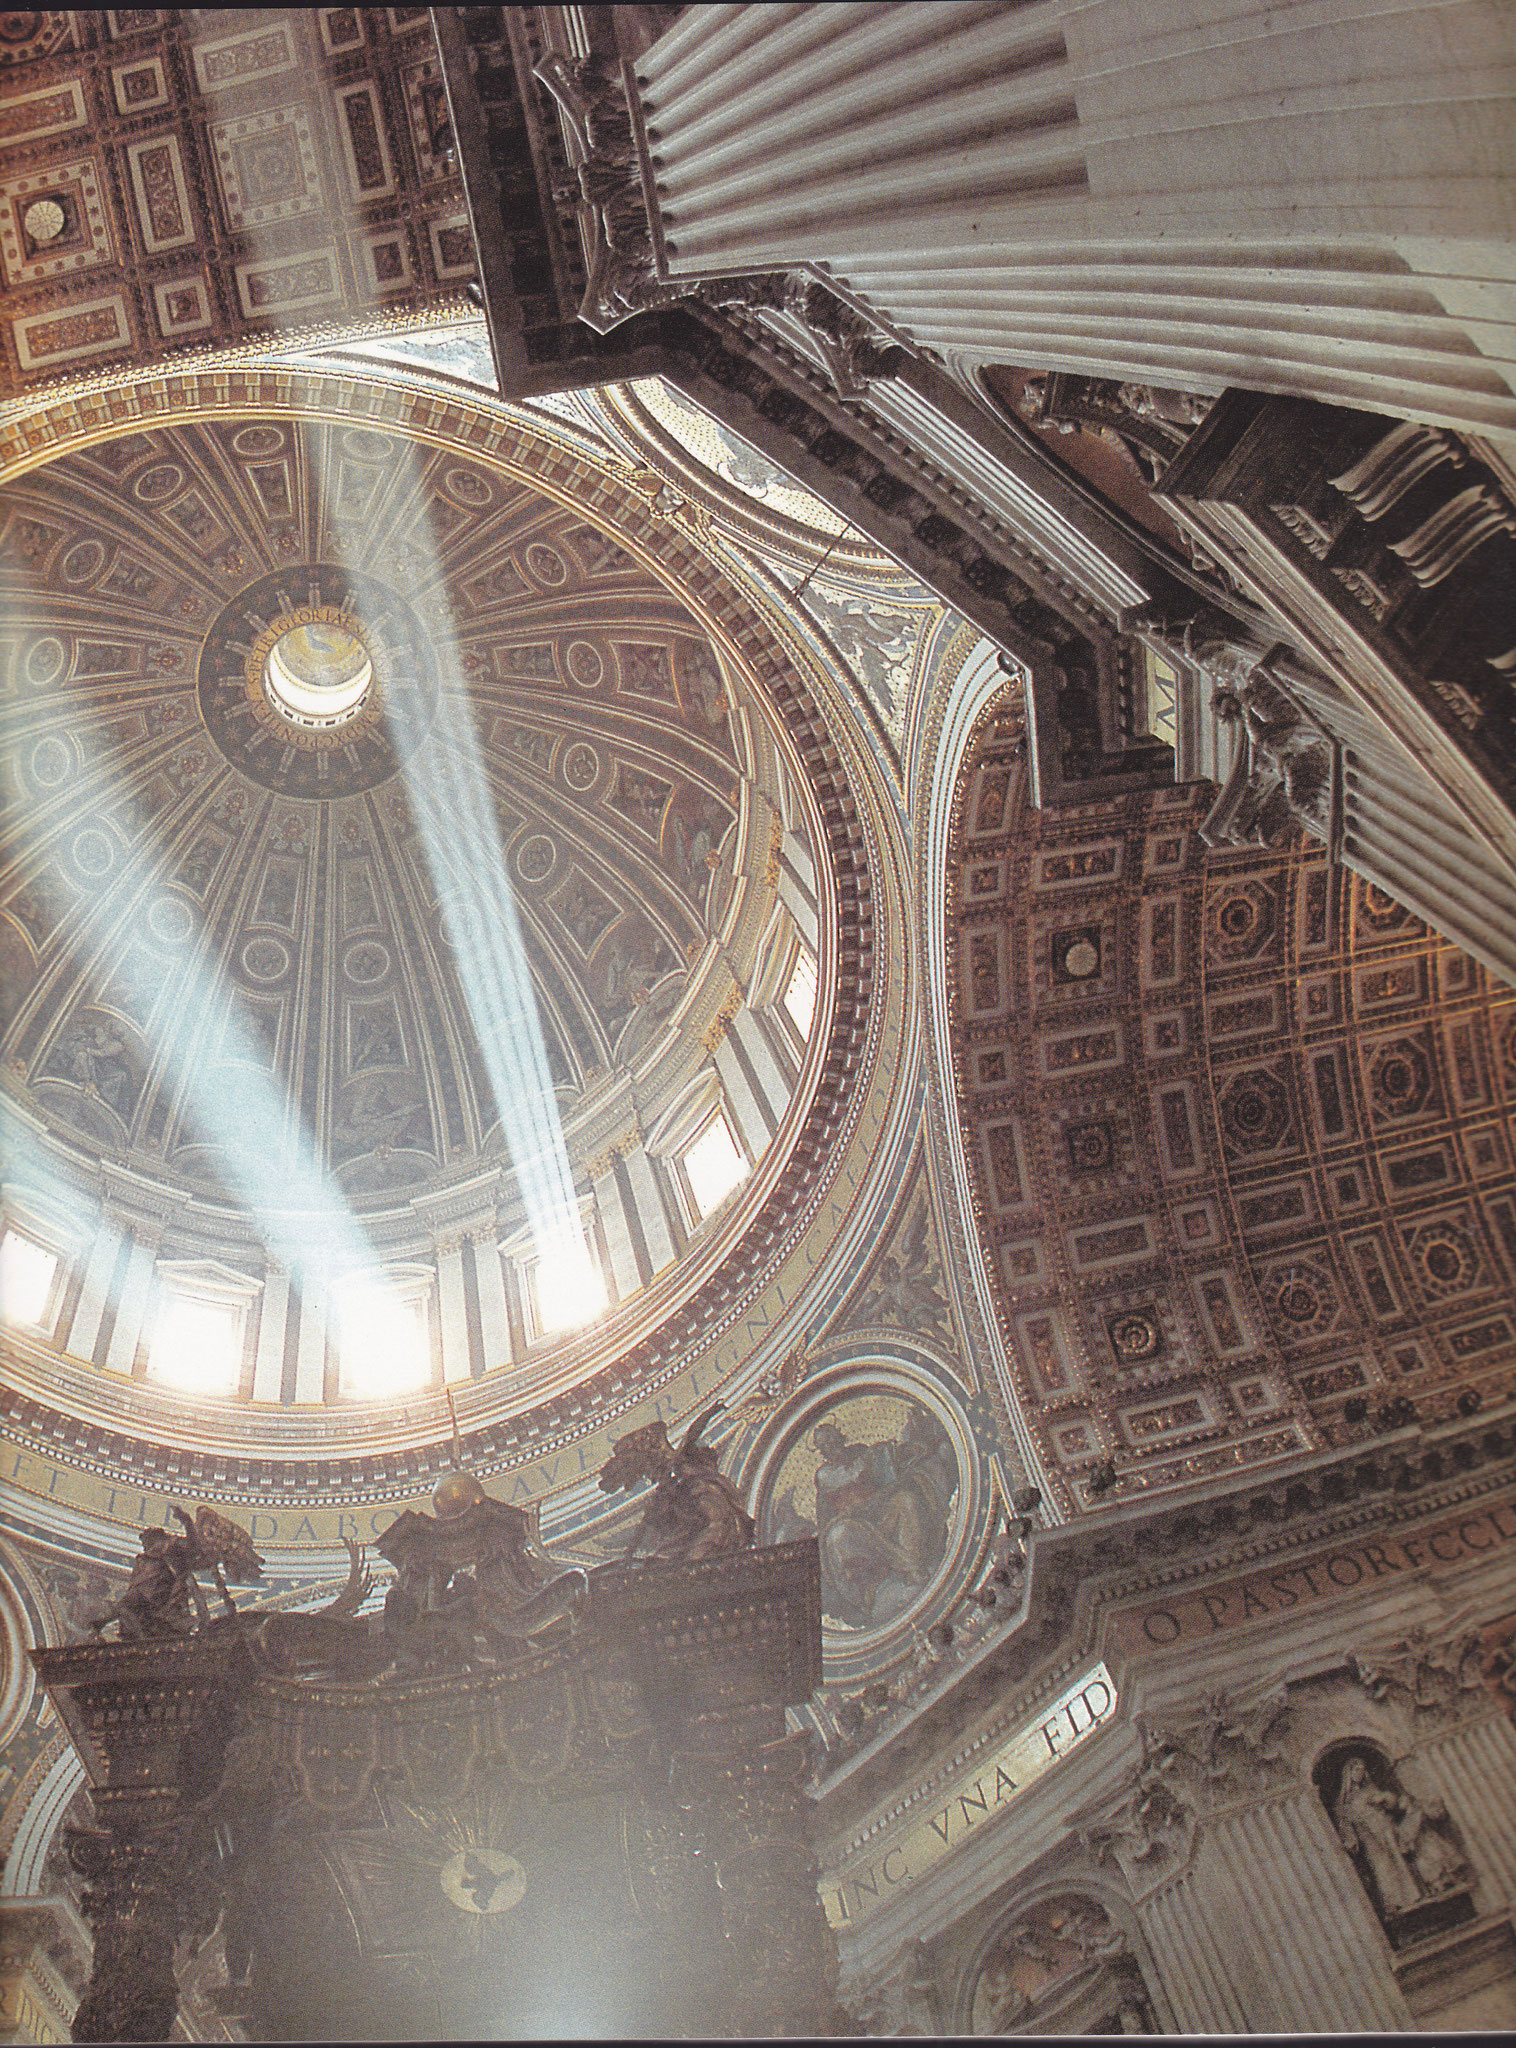 St. Peter's Church in Rome is a very nice example of bundled rays of light